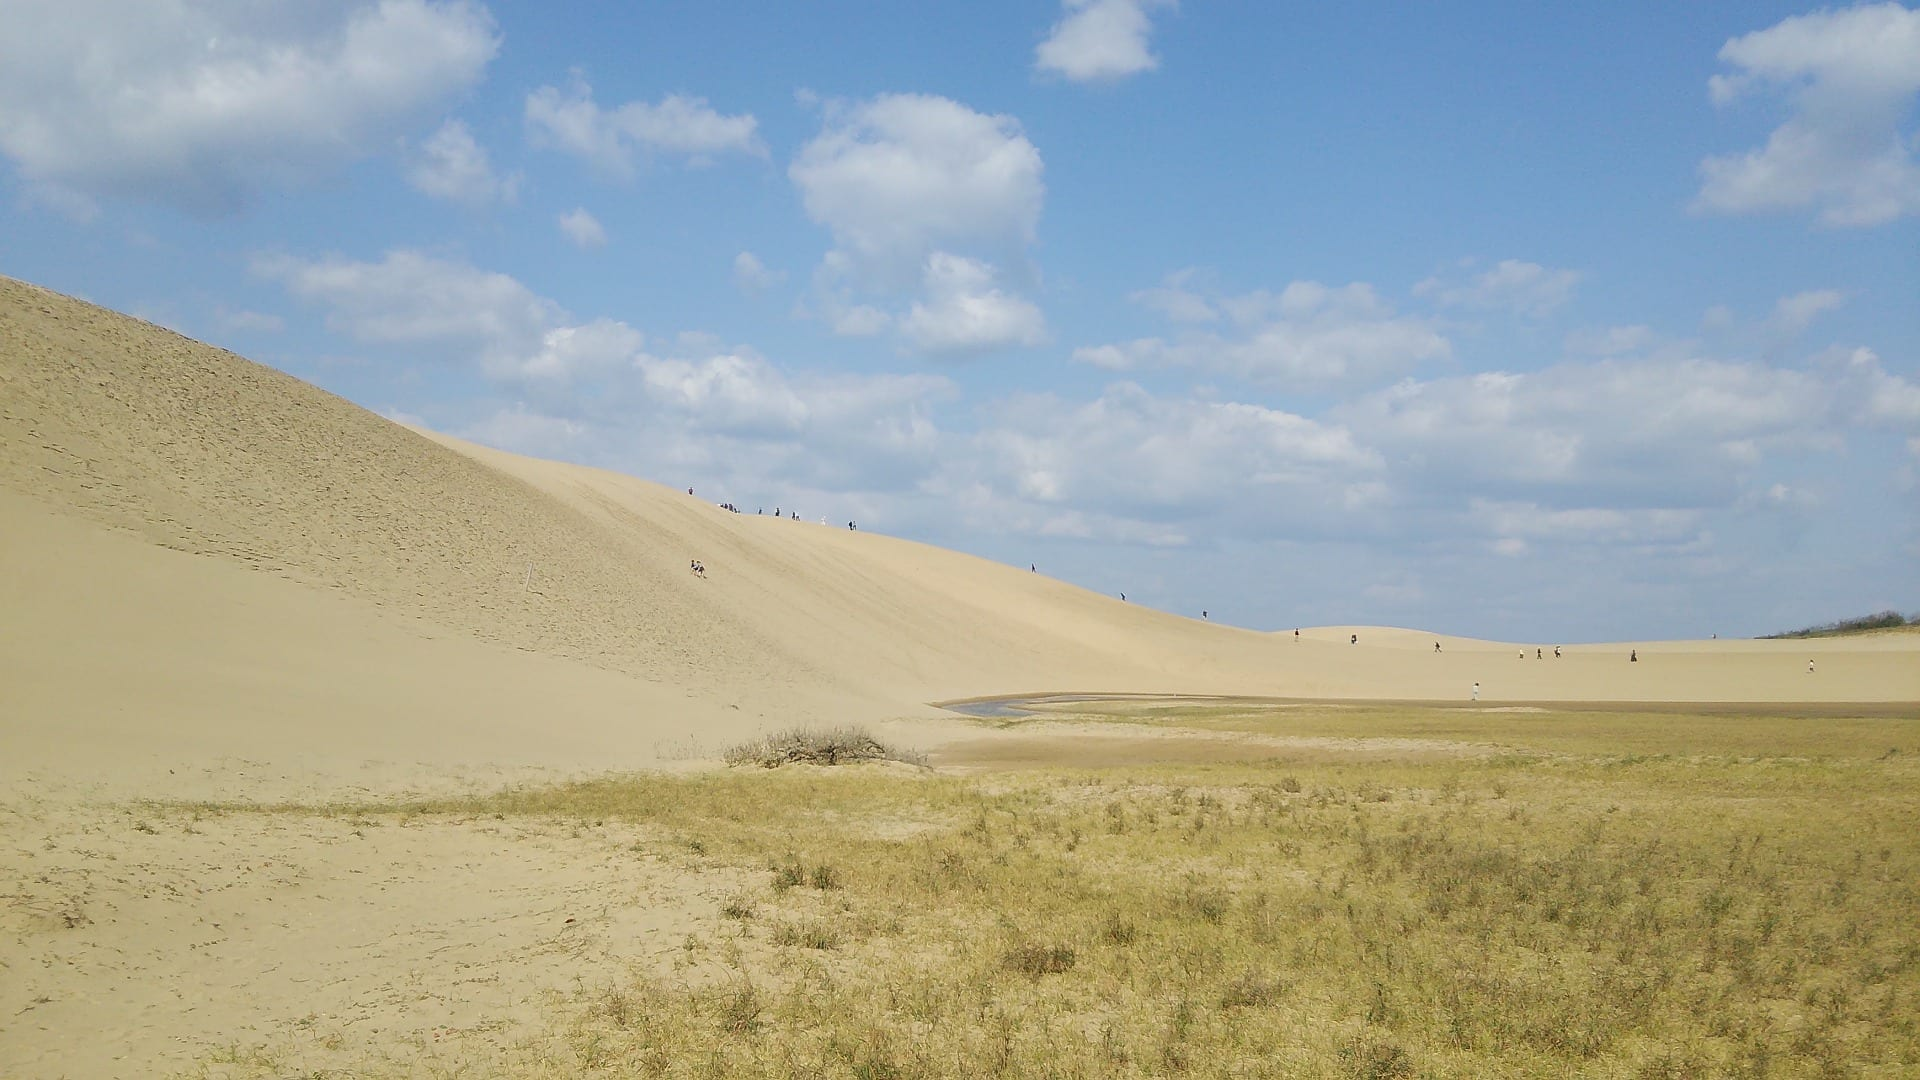 Tottori Sand Dunes - People can be seen to be climbing a sand dune